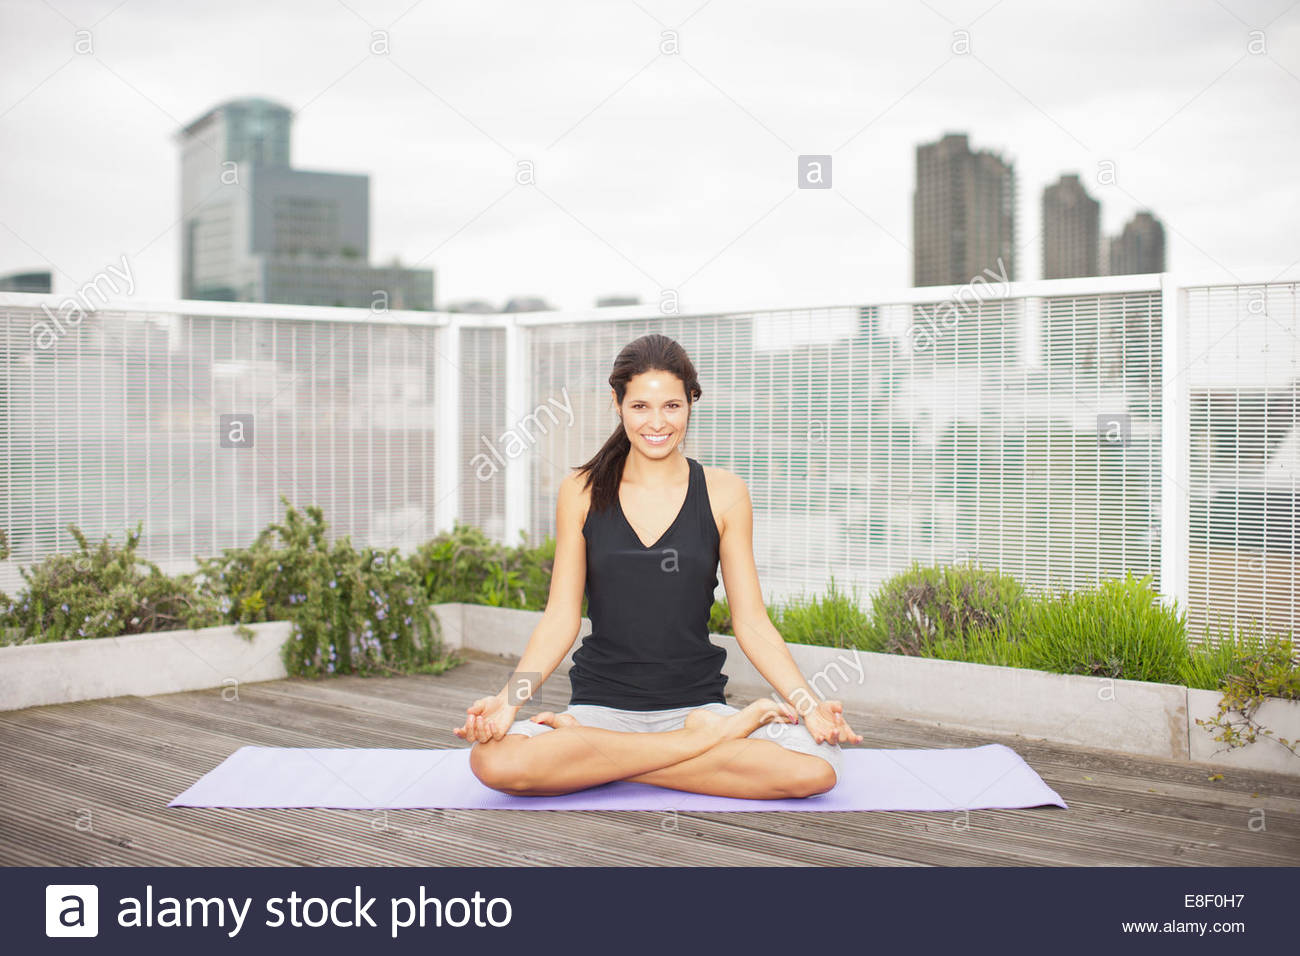 Woman practicing yoga on rooftop deck Photo Stock